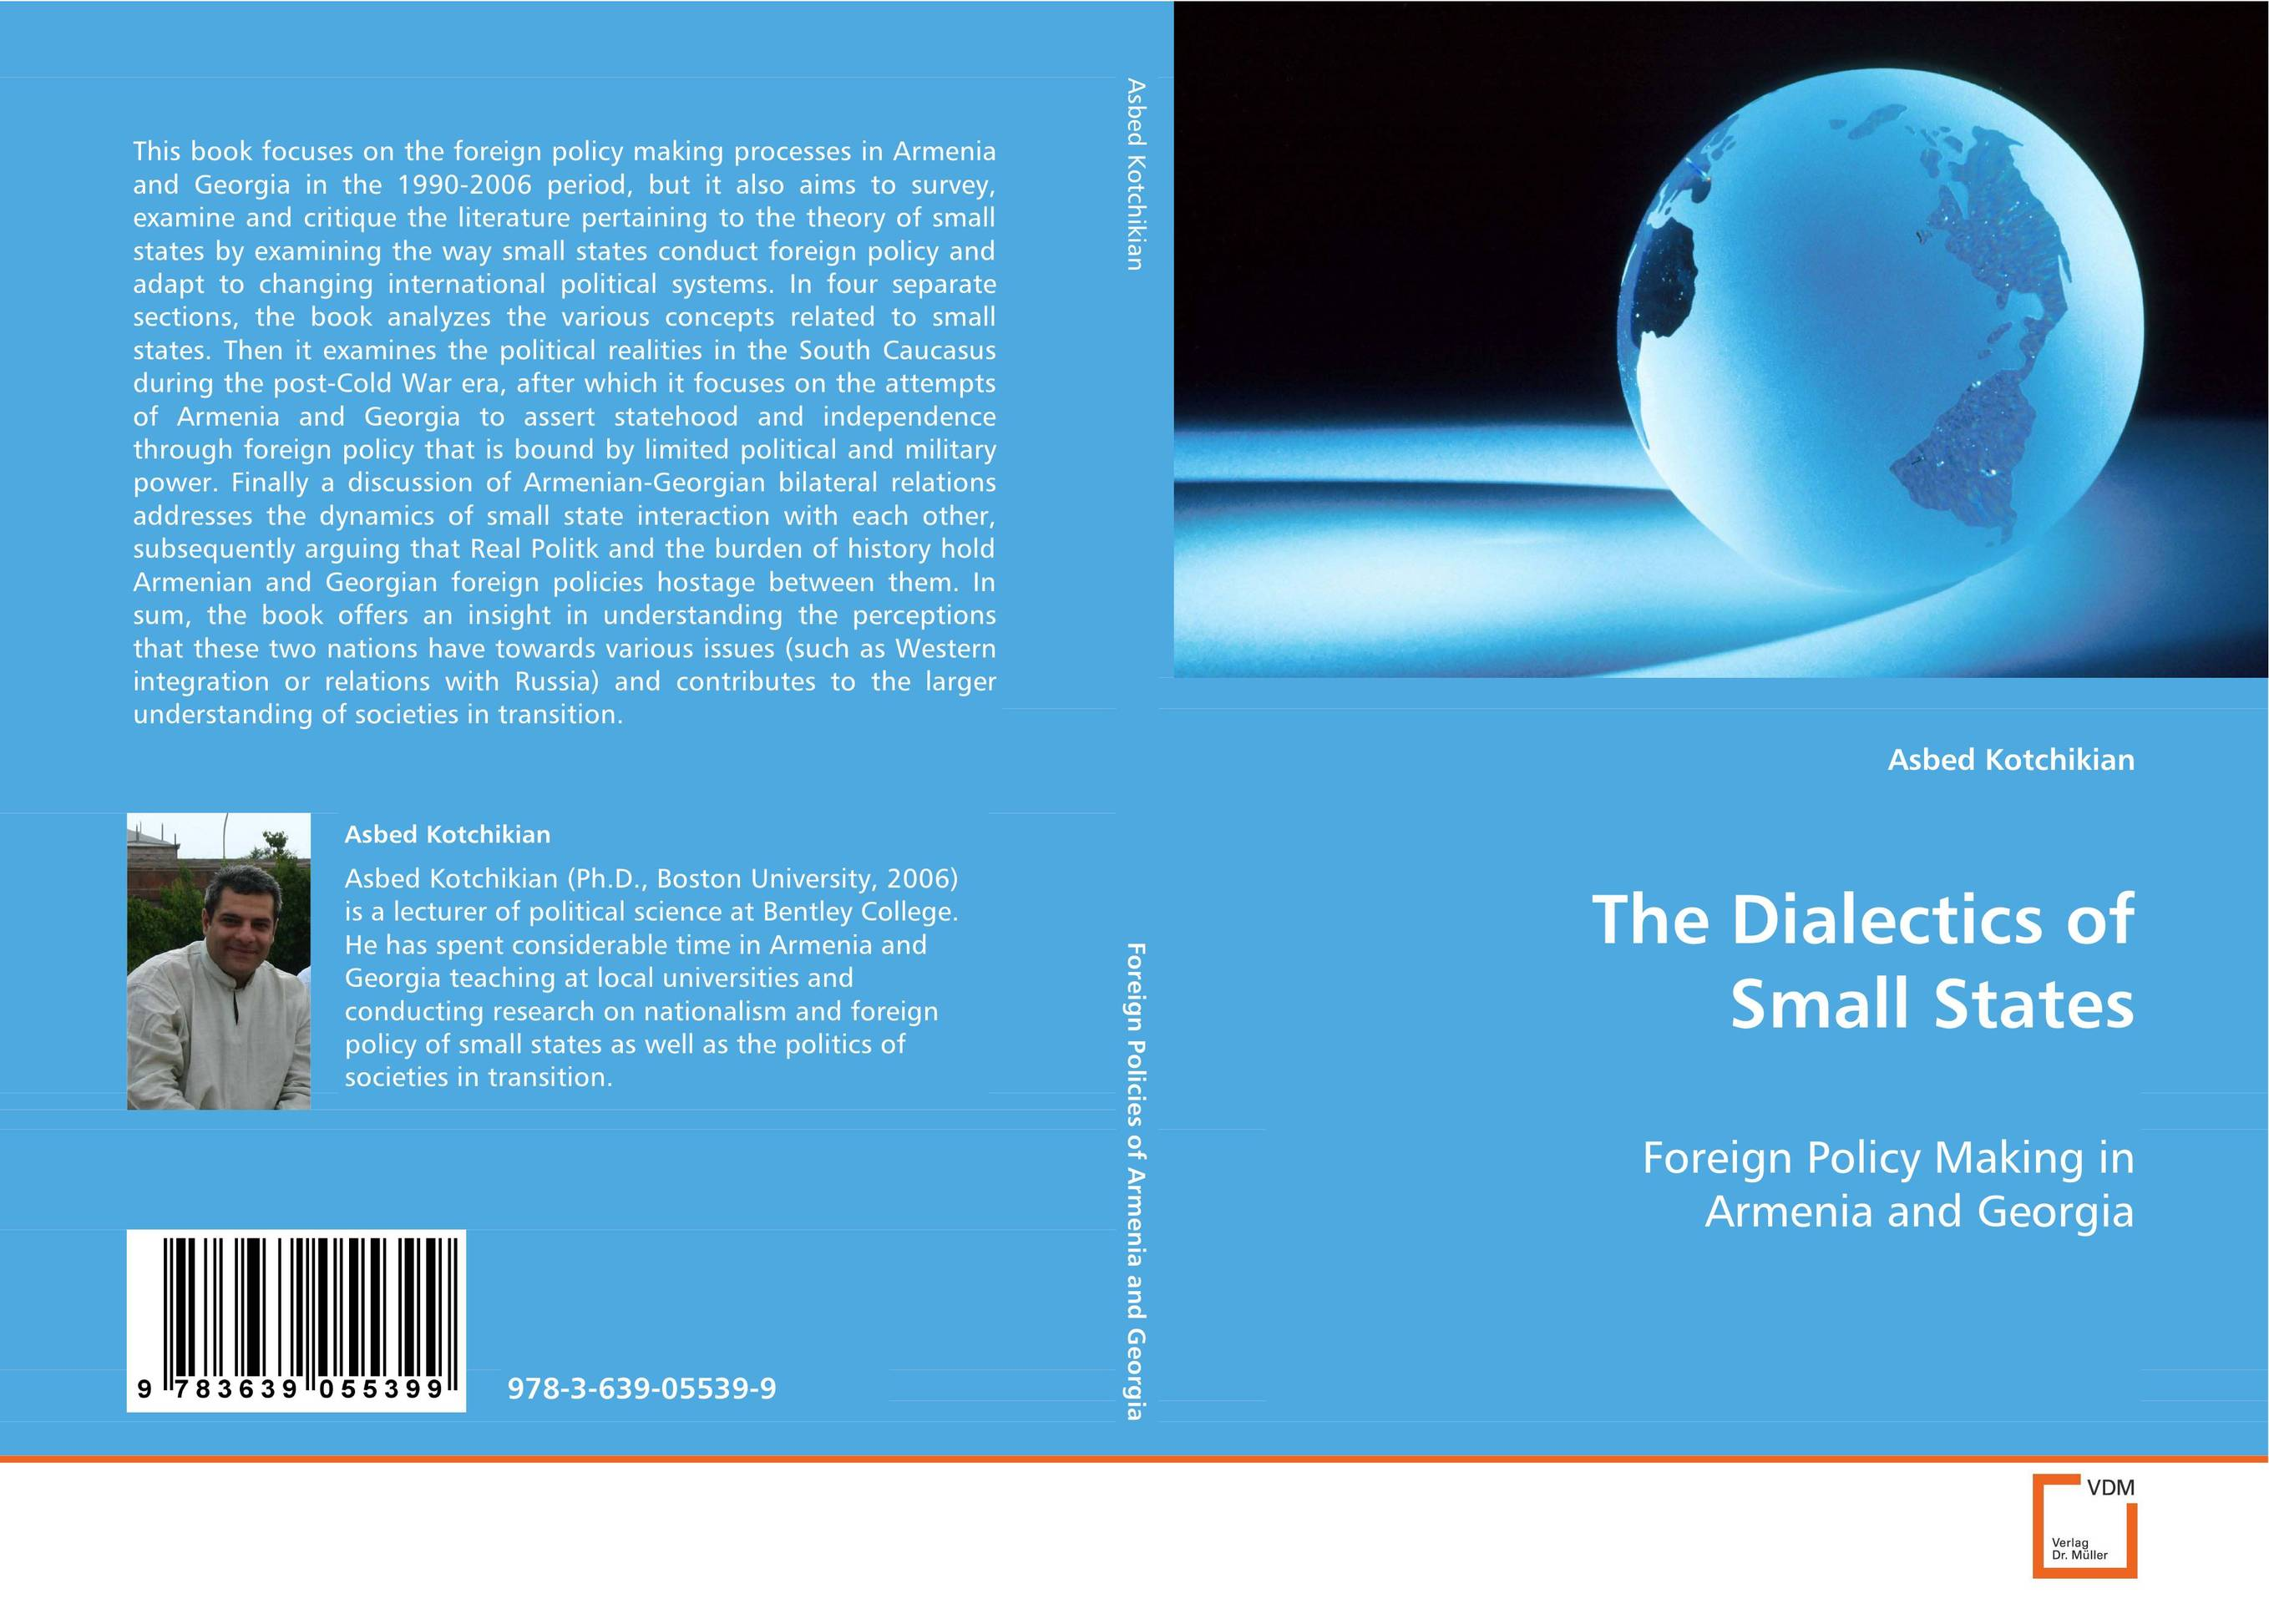 The Dialectics of Small States travels in the united states etc during 1849 and 1850